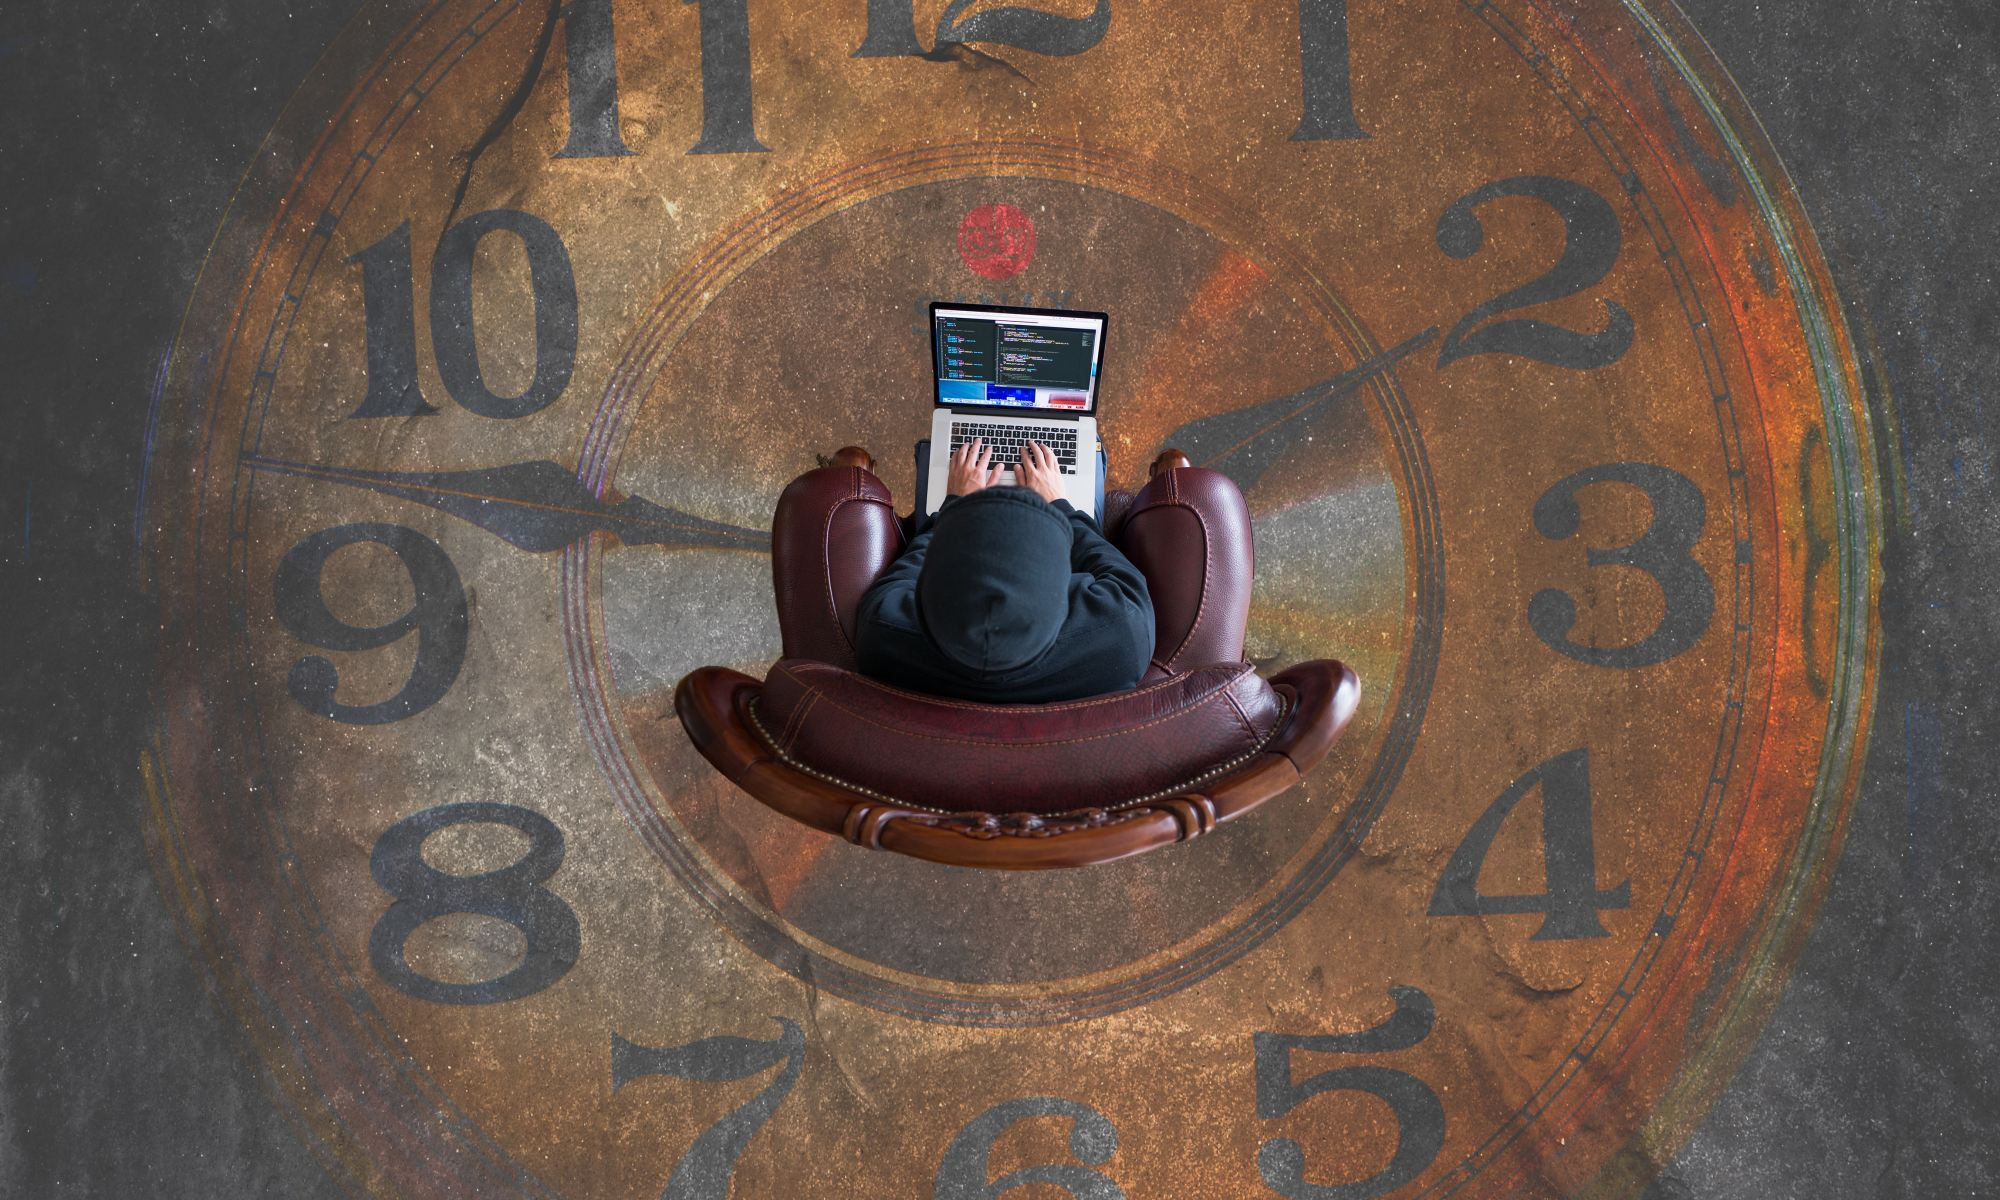 Person sitting on chair in the middle of a brown analog clock working on laptop